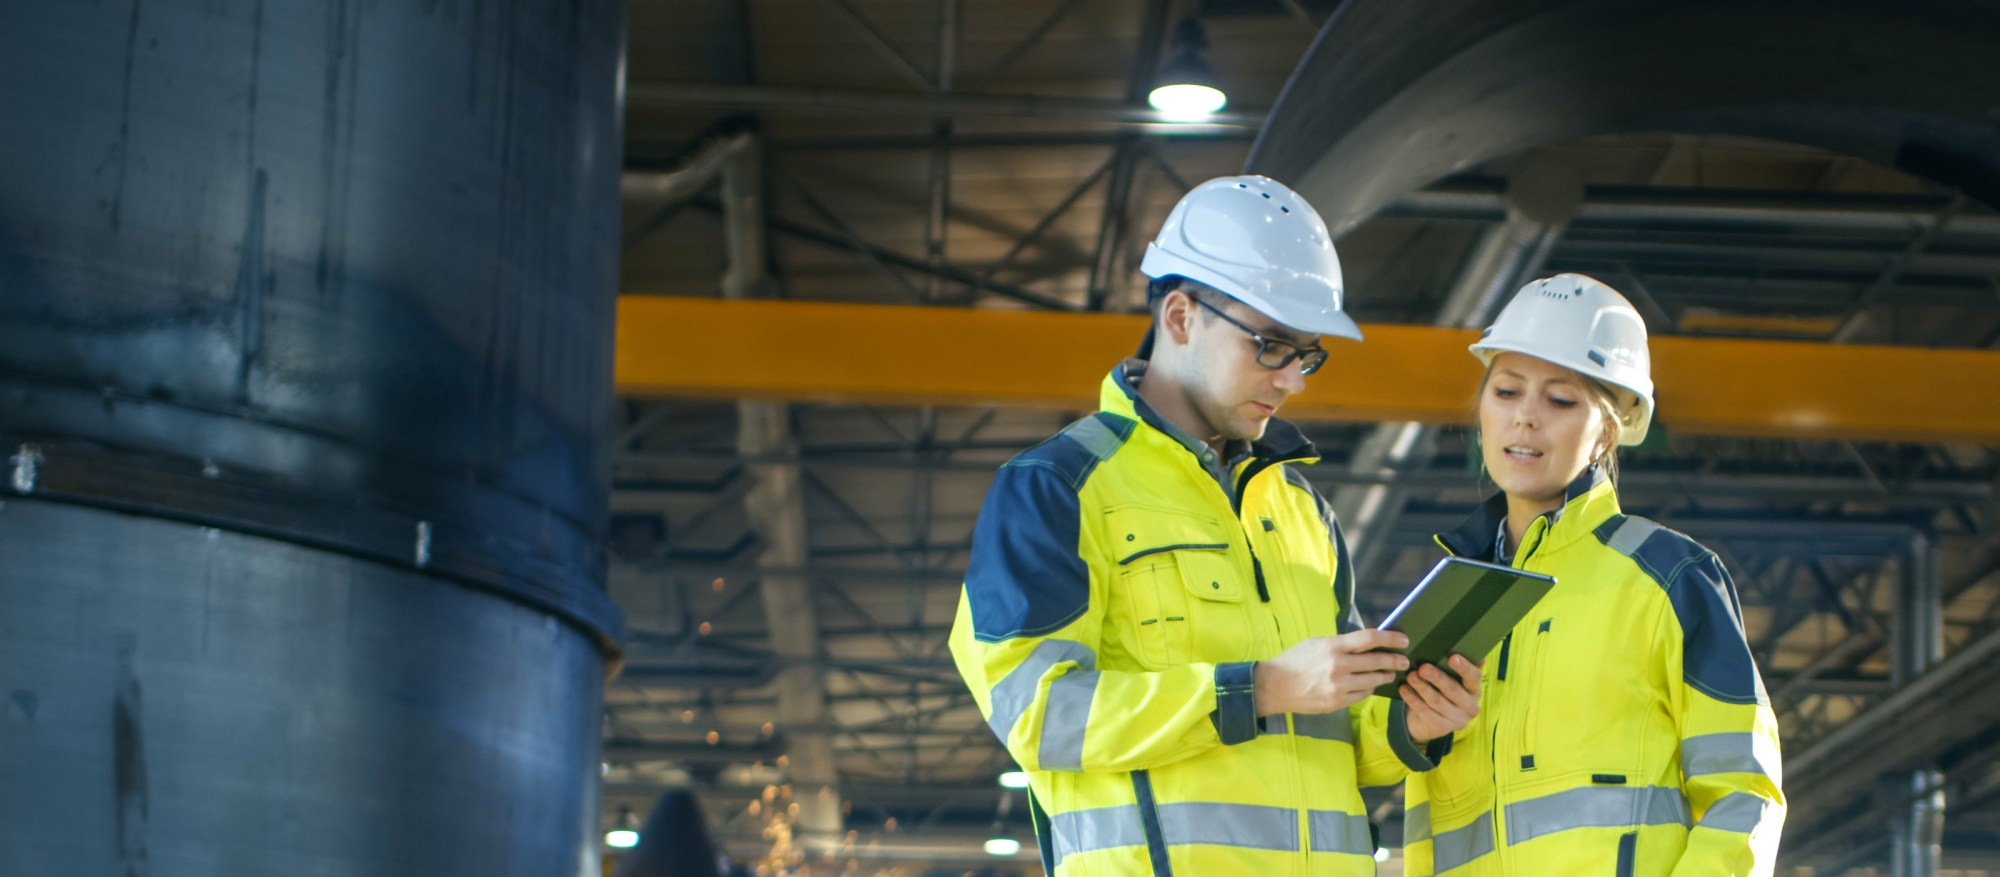 hight resolution of hmi scada software in use in industrial operations